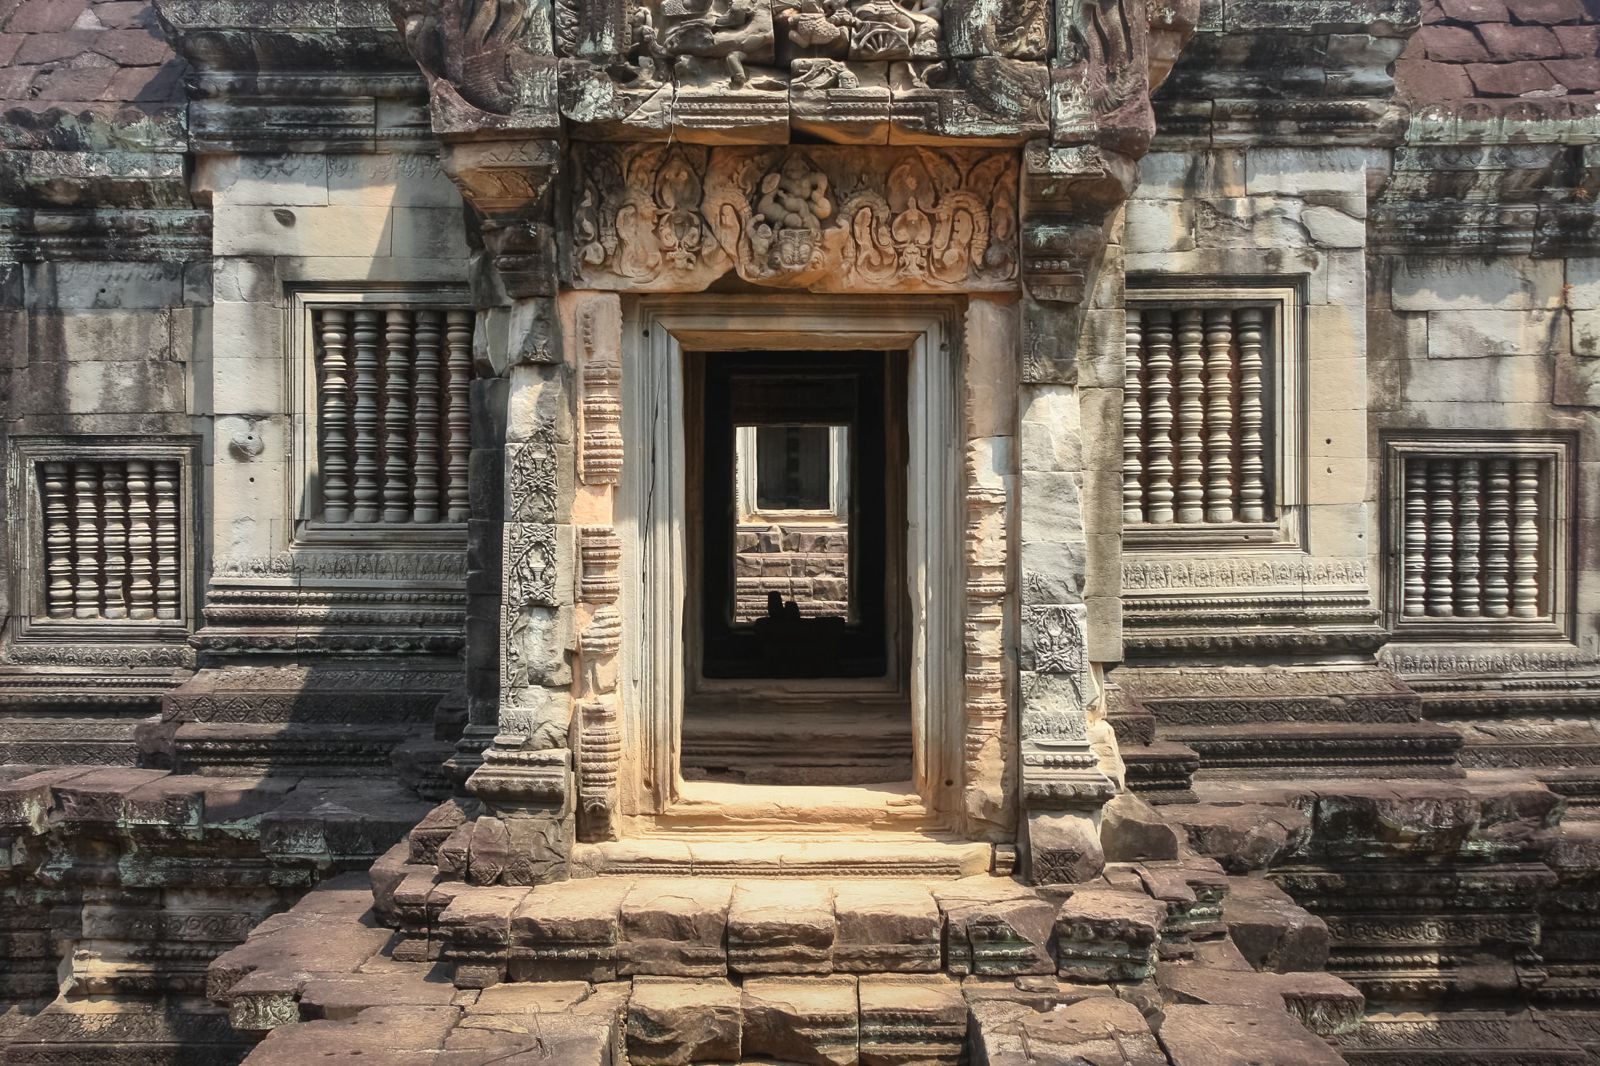 11 Incredible Temples You Have To See In Angkor, Siem Reap, Cambodia (7)